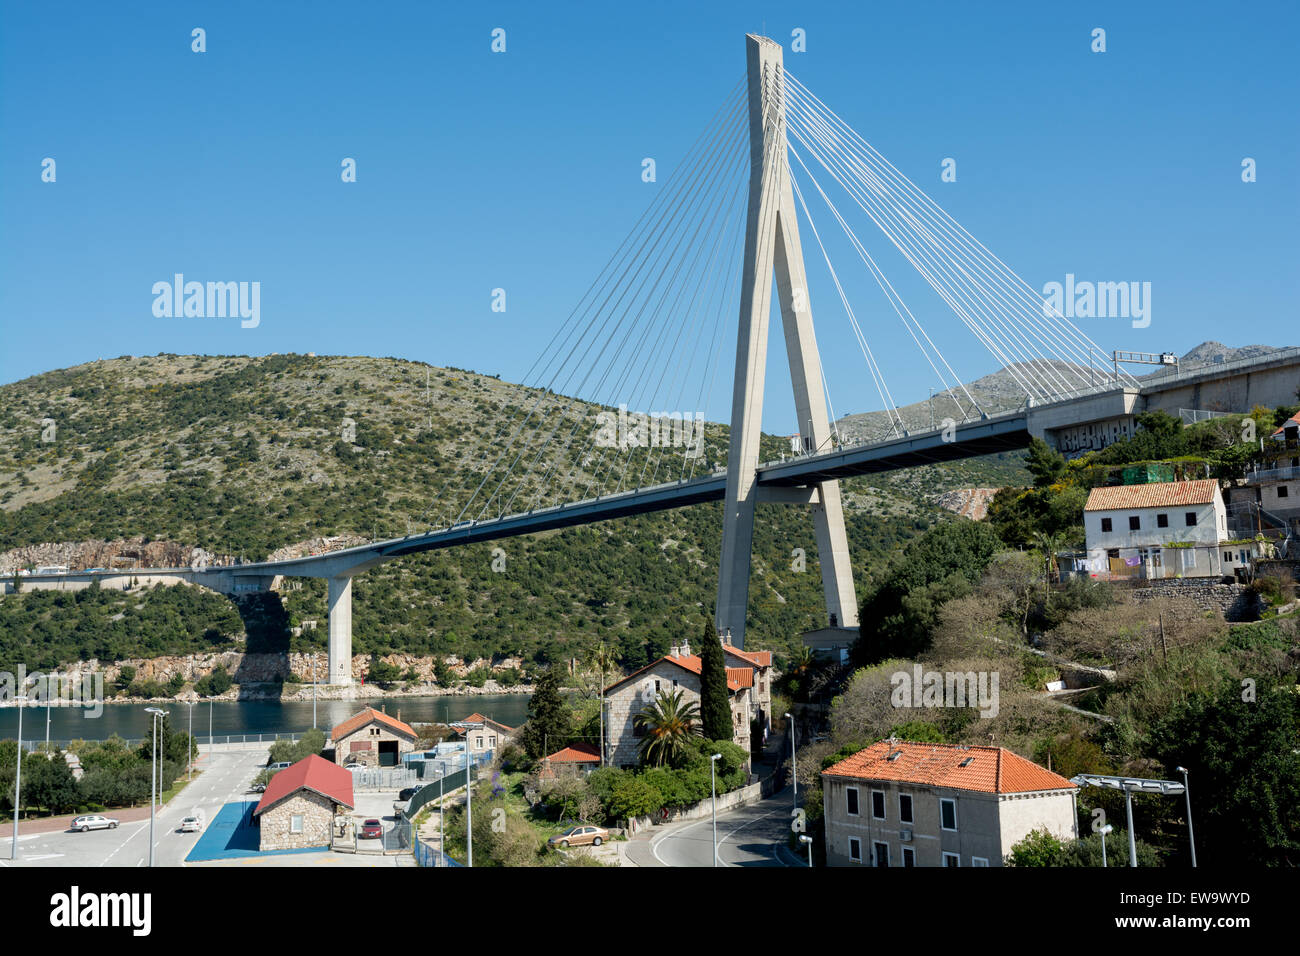 Franjo Tudman Bridge, Cable-stayed, suspension bridge at the western approach to Dubrovnik next to the Port of Gruz, - Stock Image